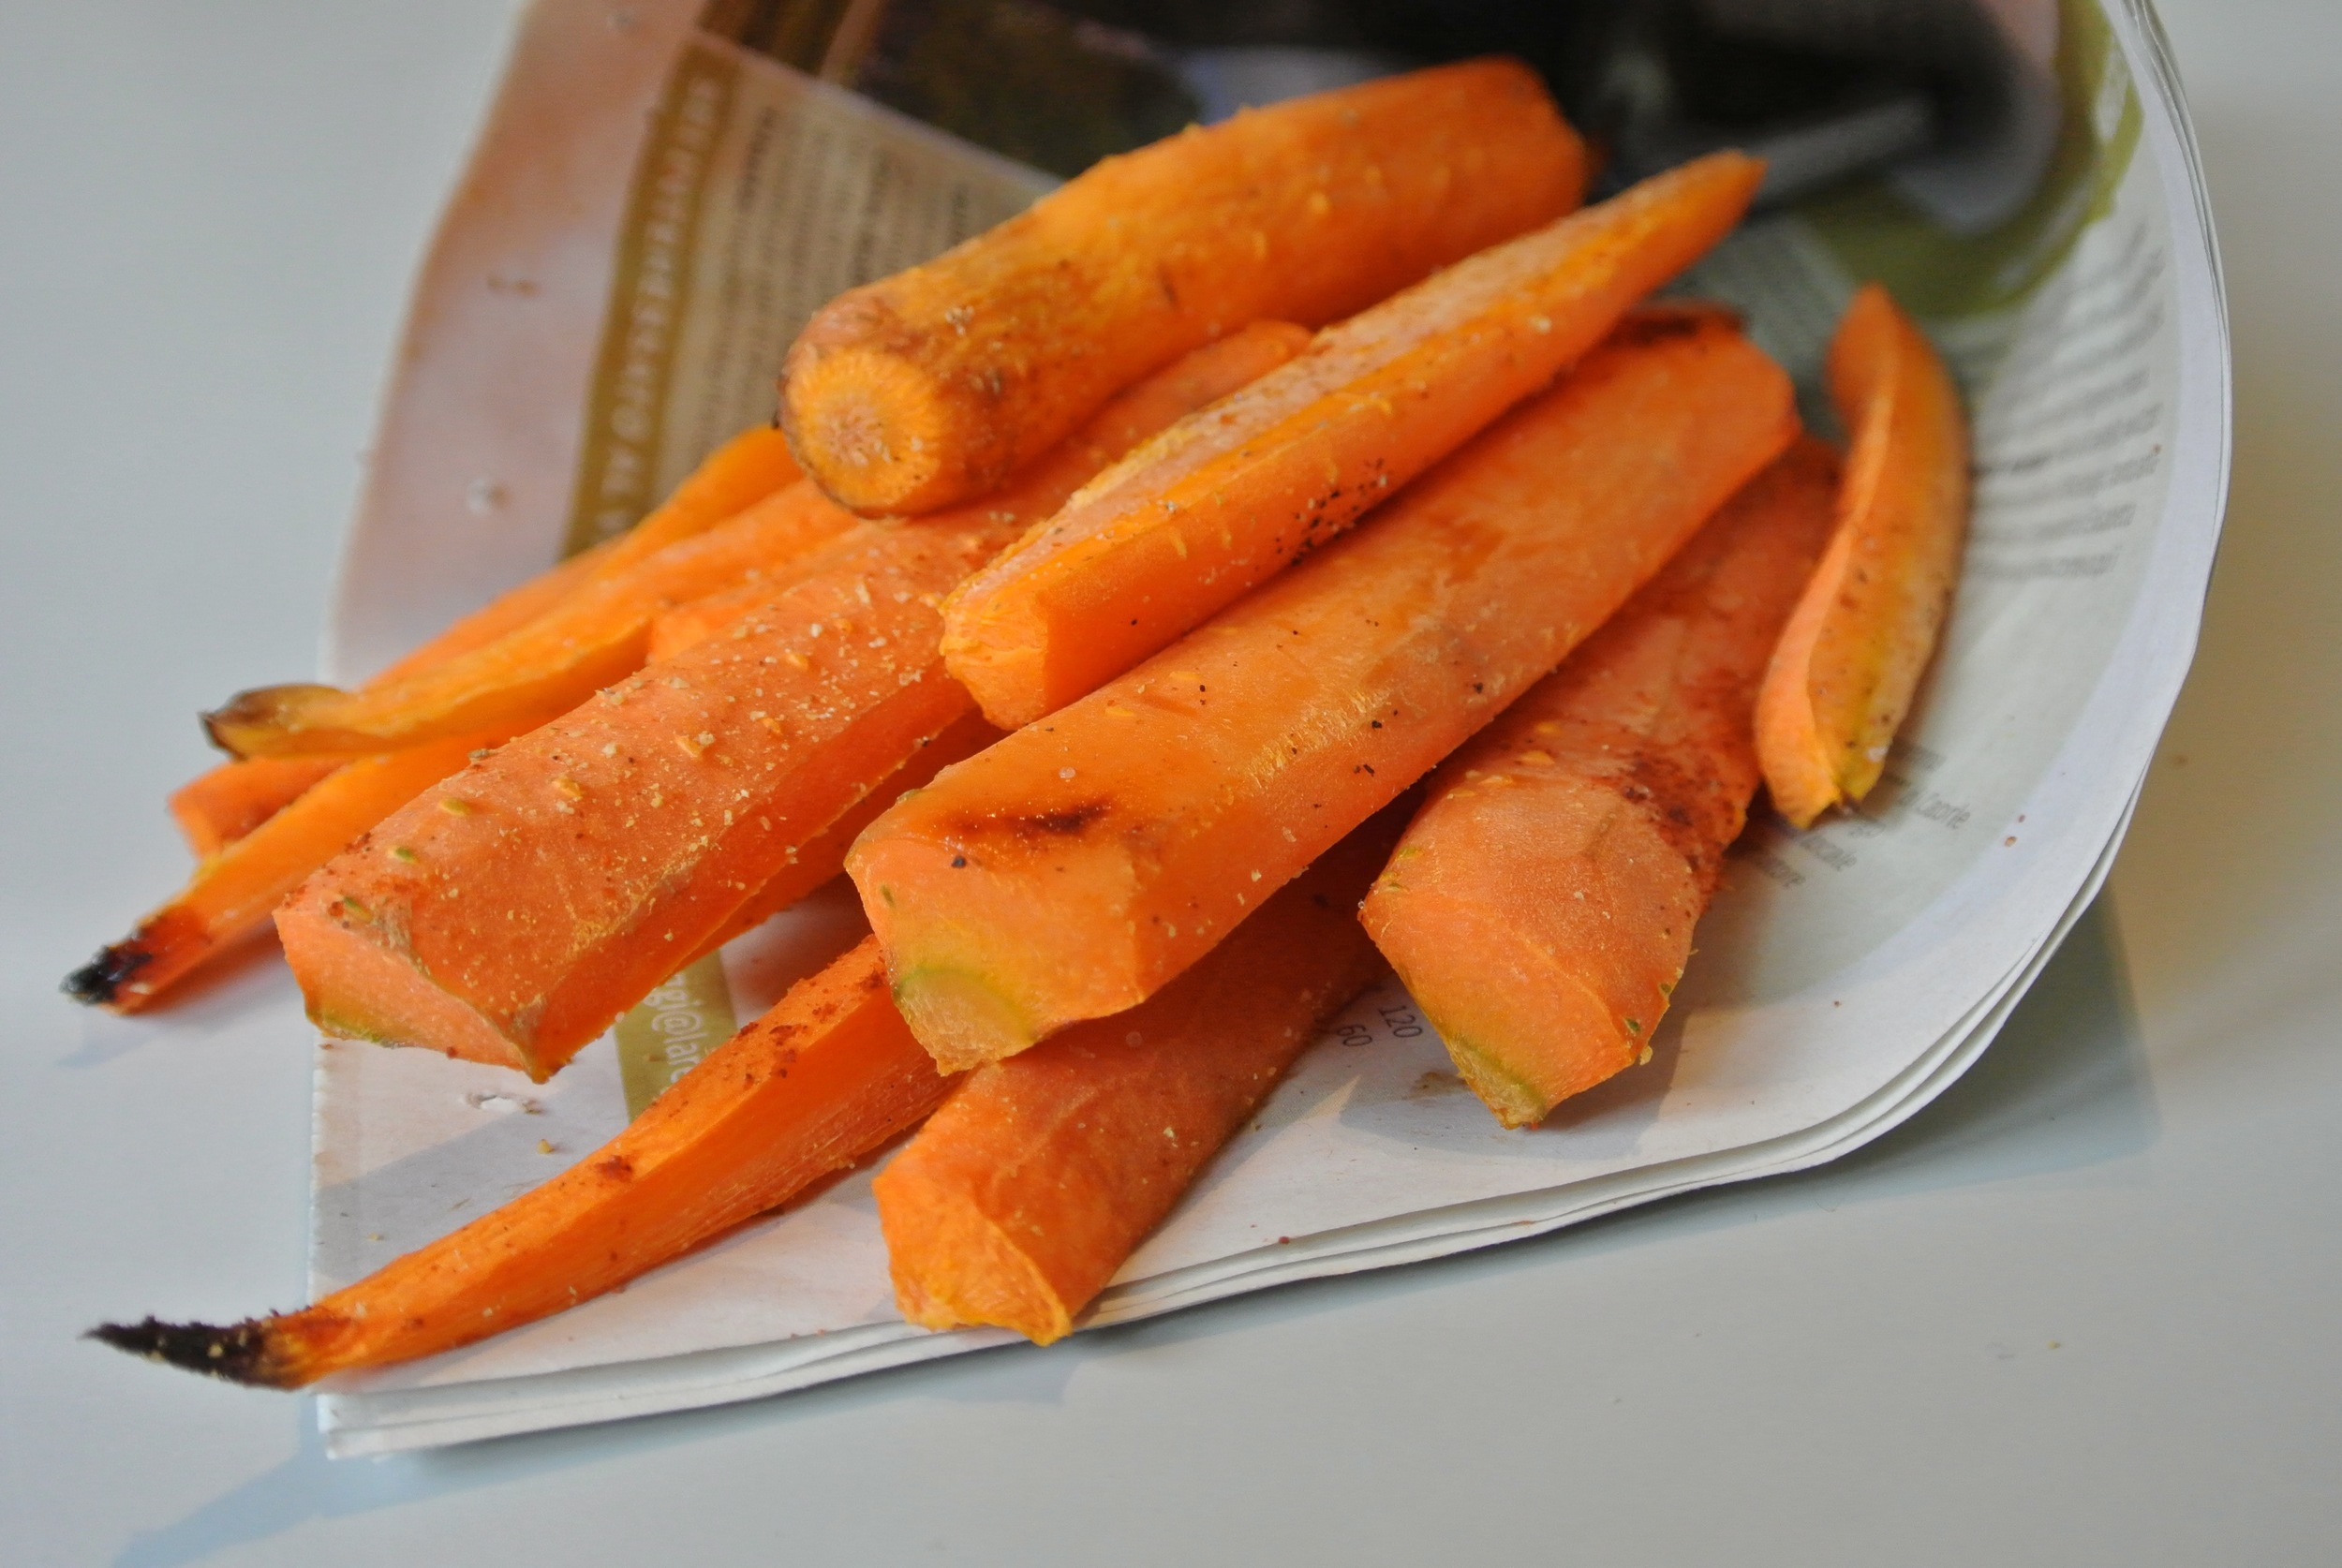 Easy-healthy-baked-carrot-fries-recipe-pumpup-blog-1.jpg